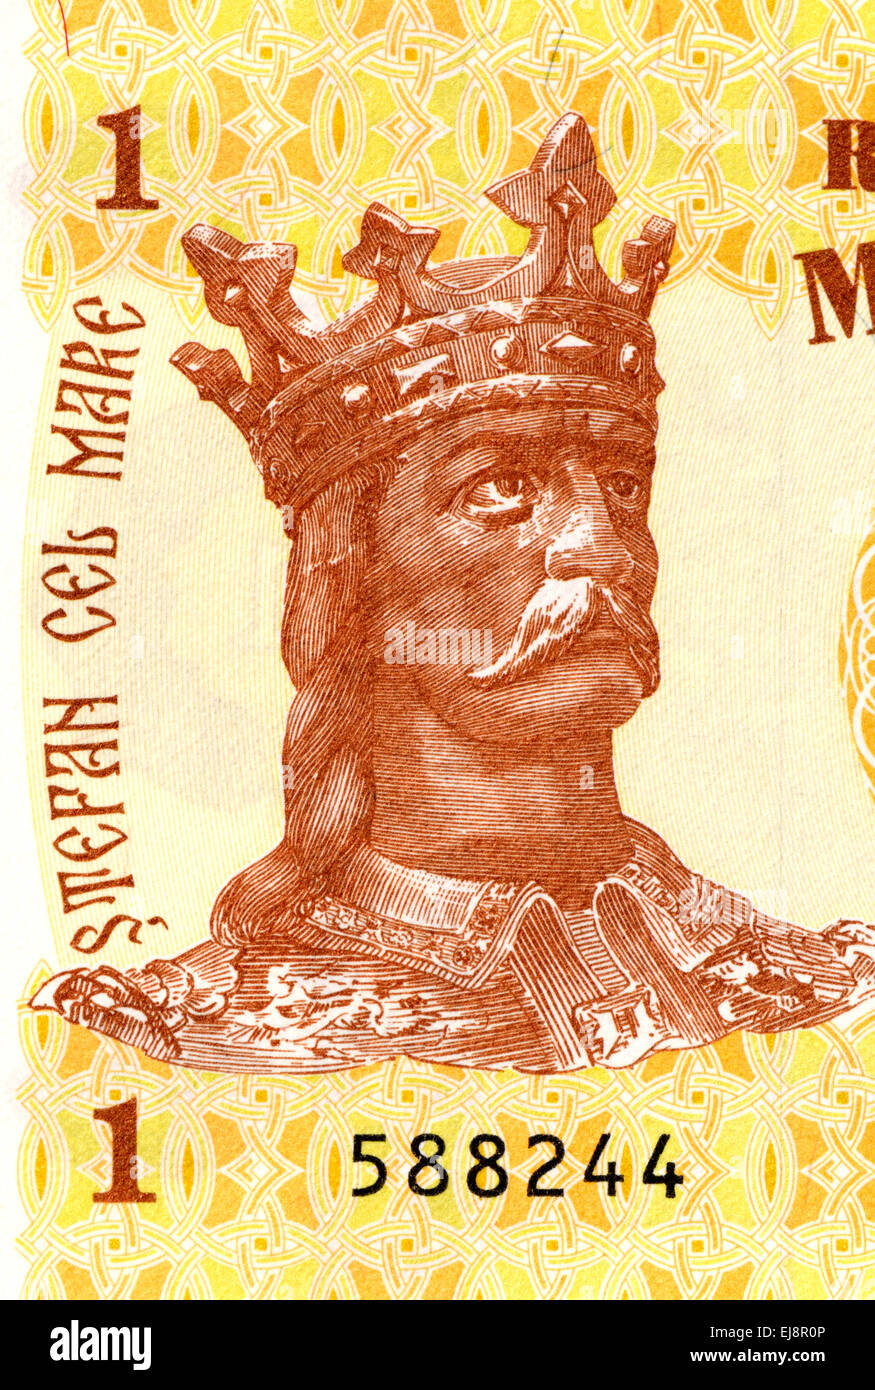 Detail from a Moldovan 1 Leu banknote showing King Stephen III of Moldova - Stock Image